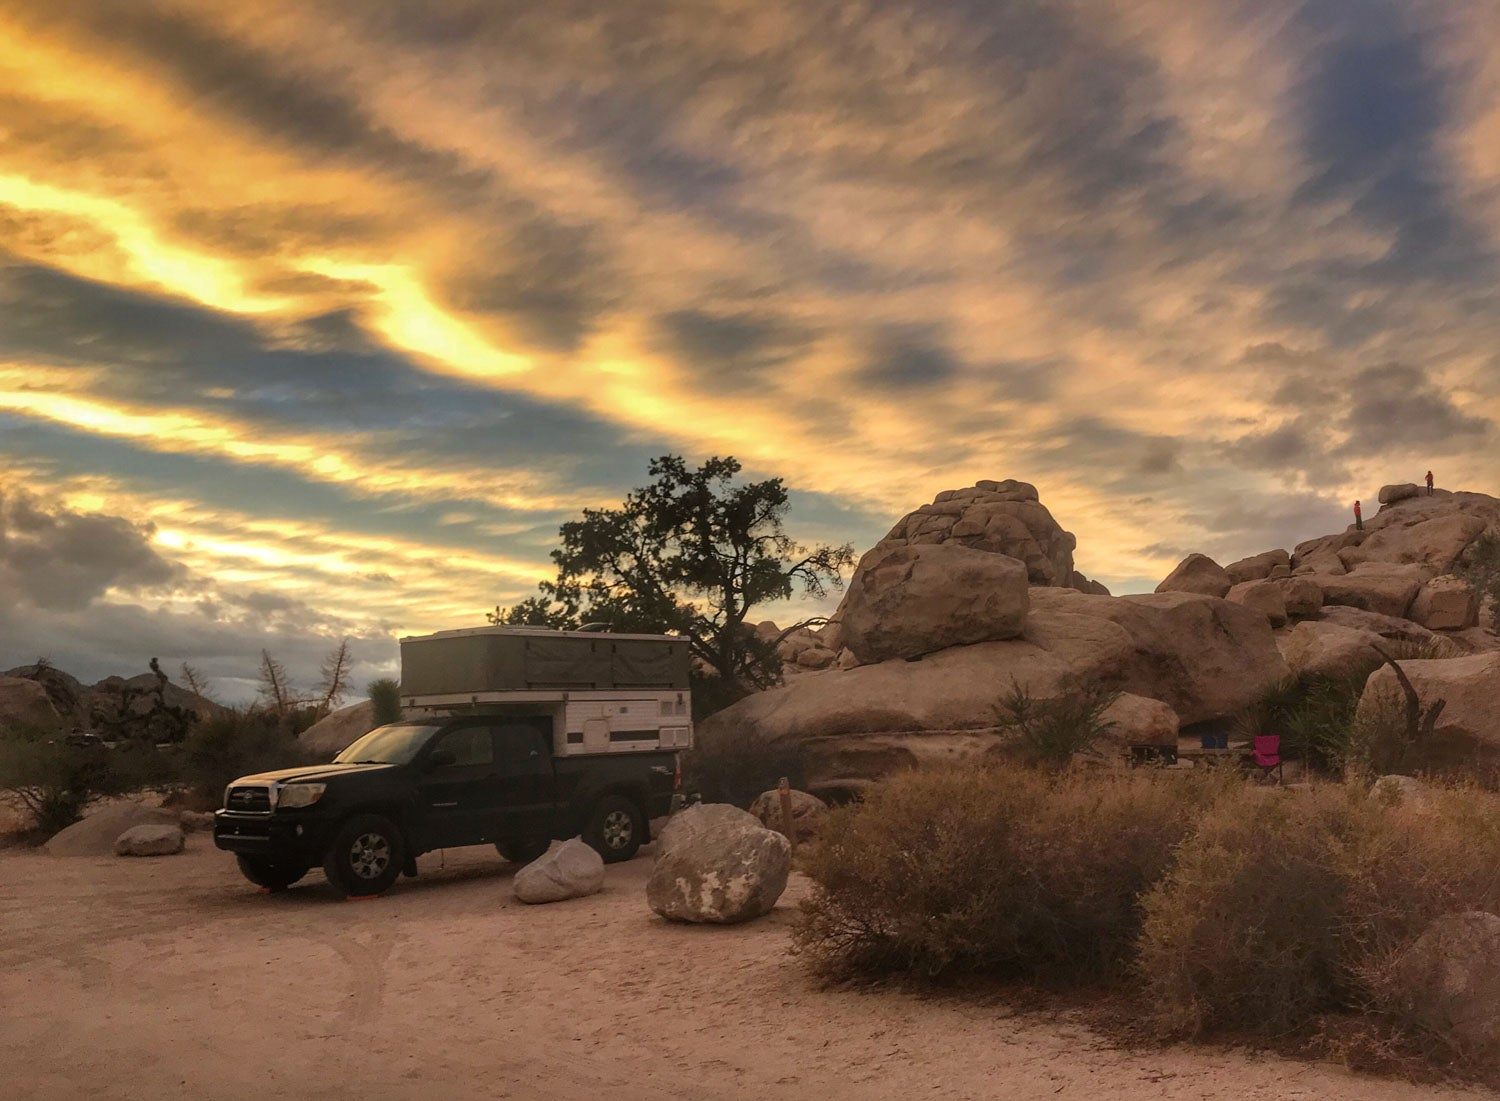 golden sunset illuminates rocks and truck camper at hidden valley campground in joshua tree national park